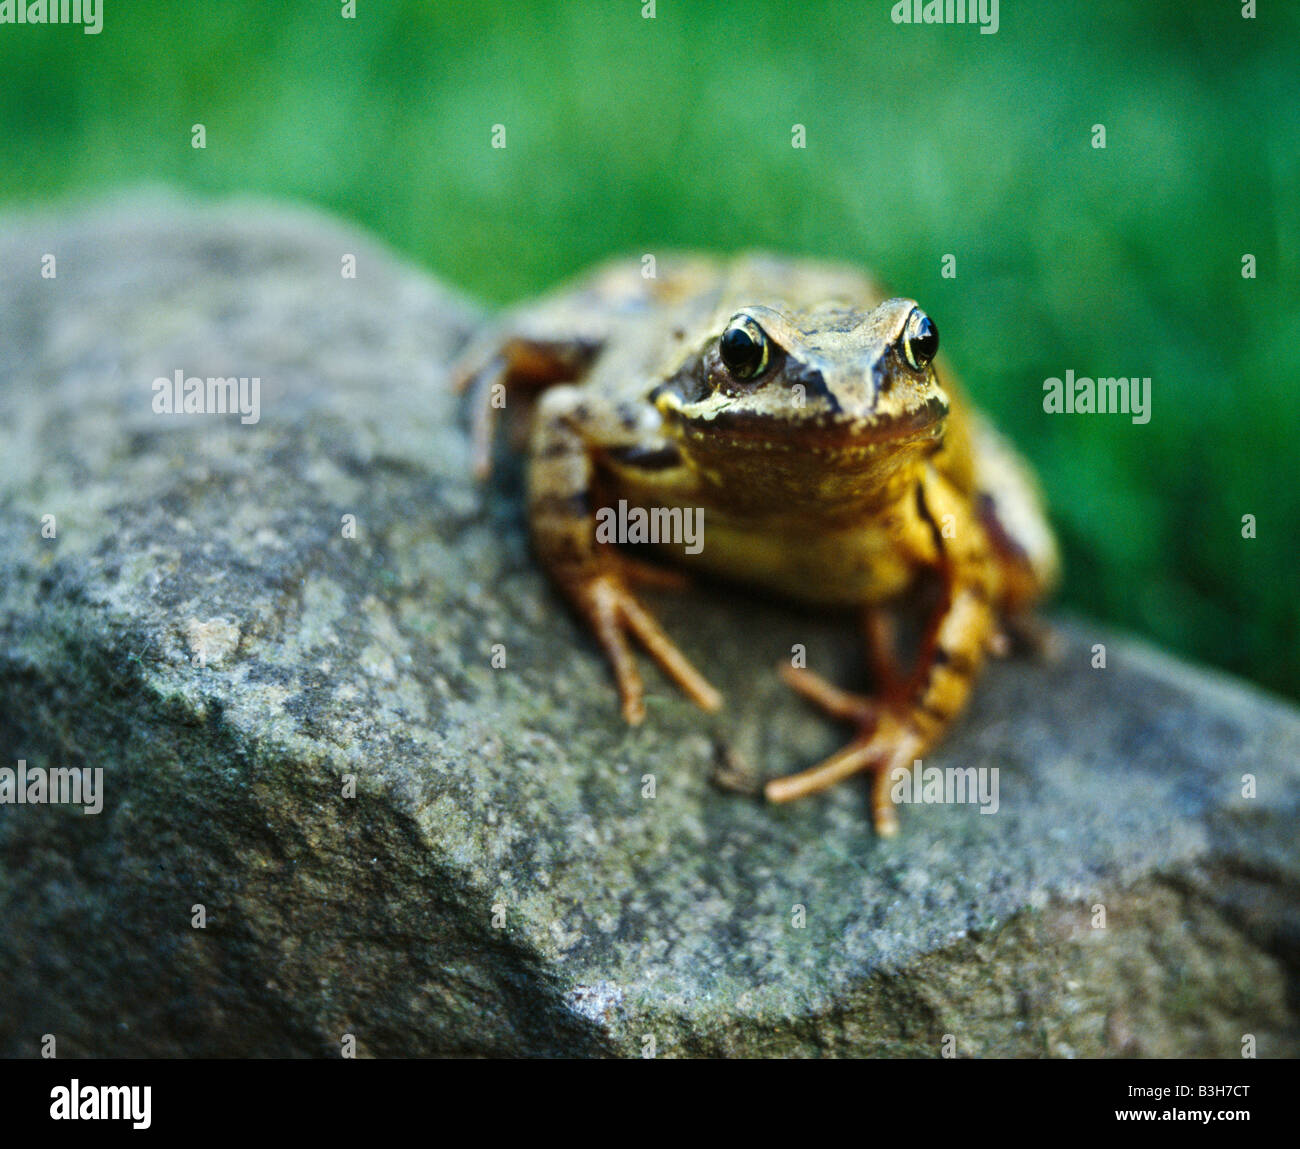 Common Frog, Rana Temporaria. - Stock Image